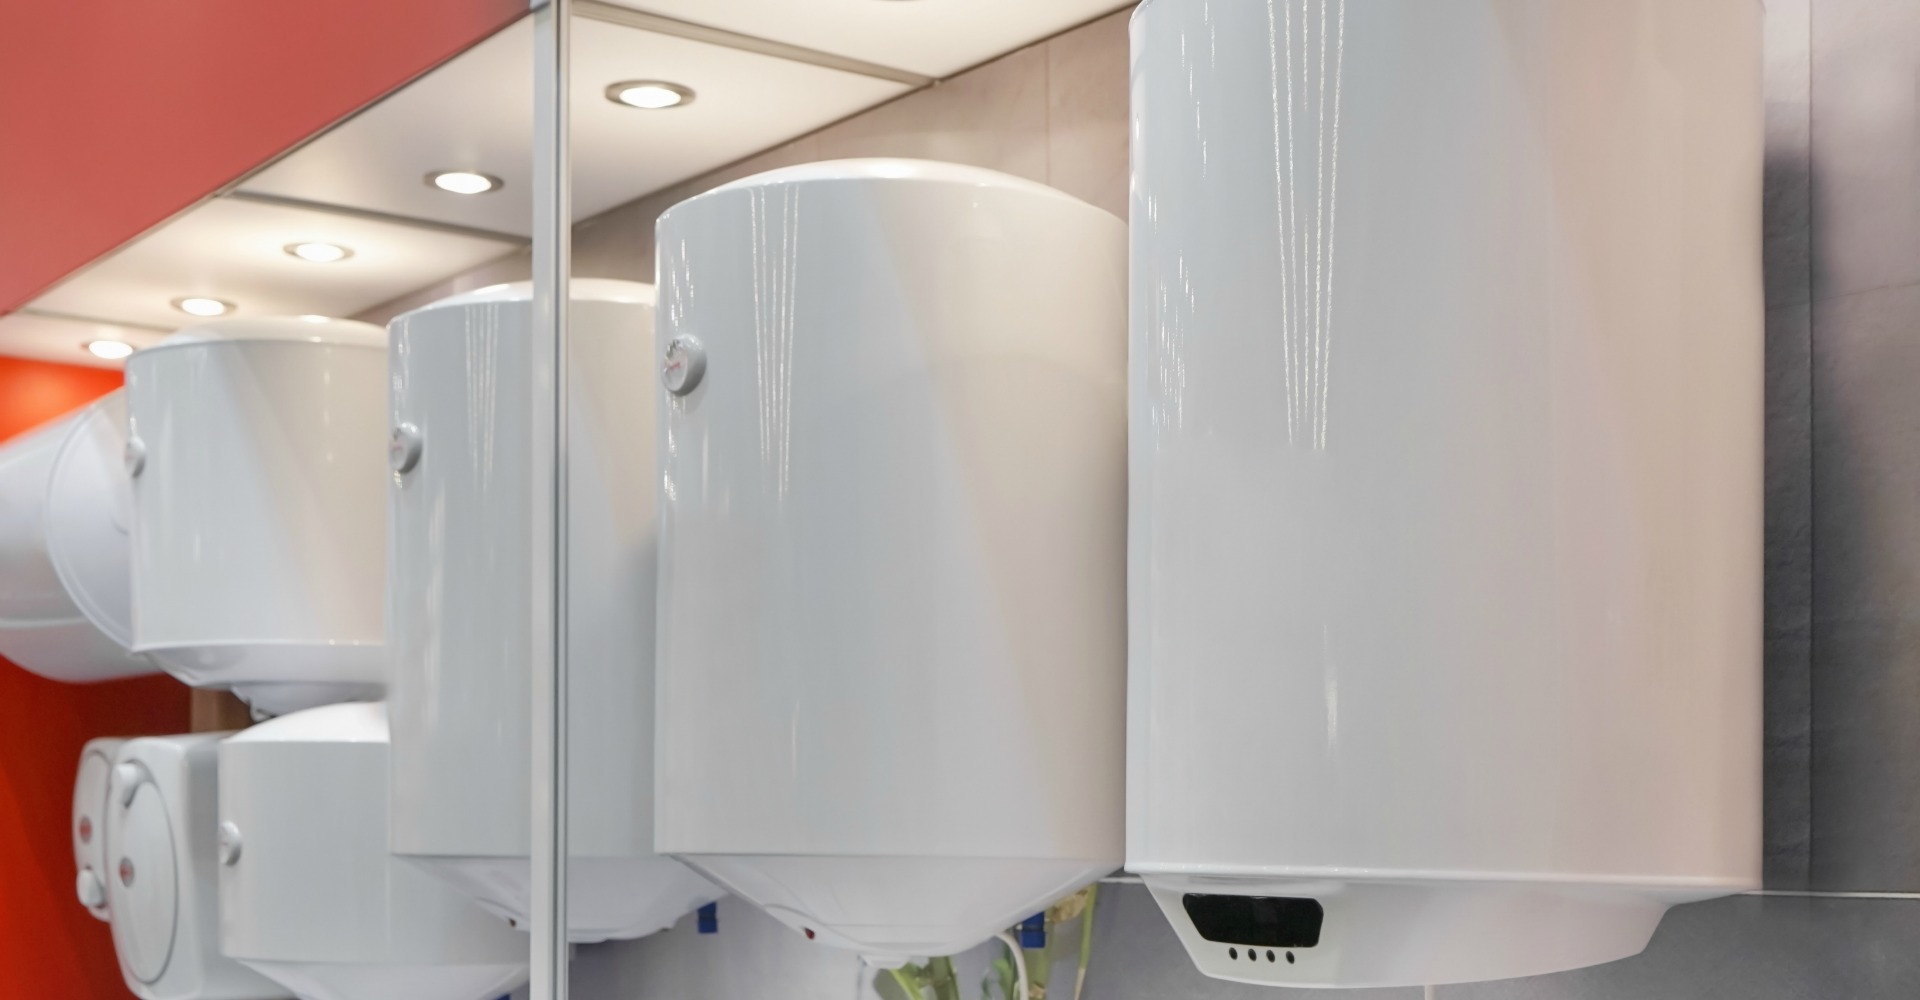 water-heaters Water Heaters- Which Type Is the Right One for Your Home?